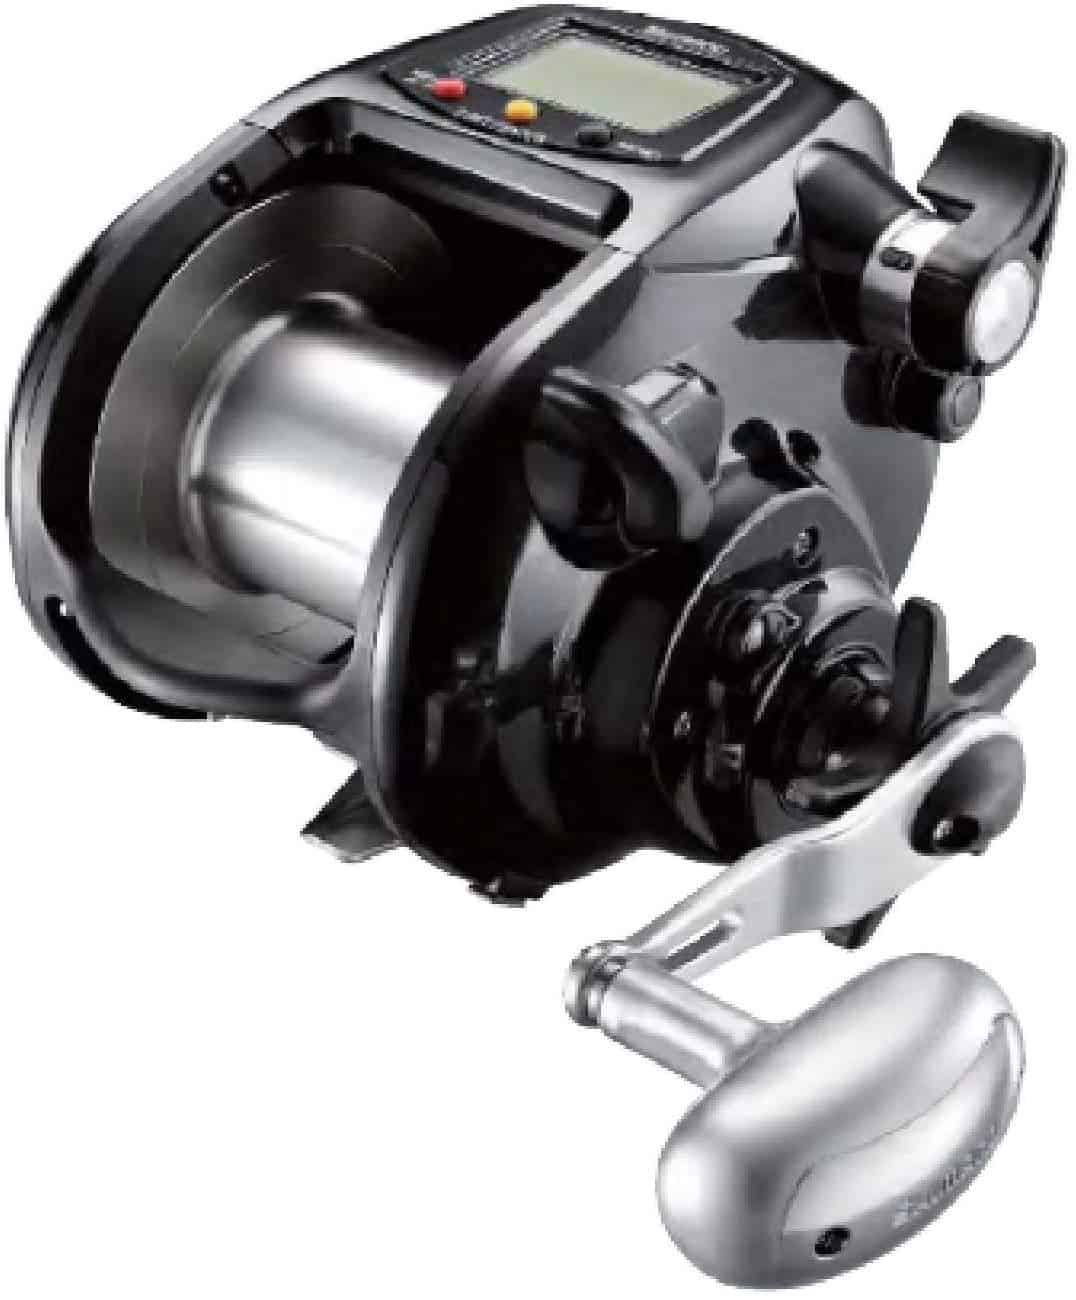 Force Master 9000 by Shimano